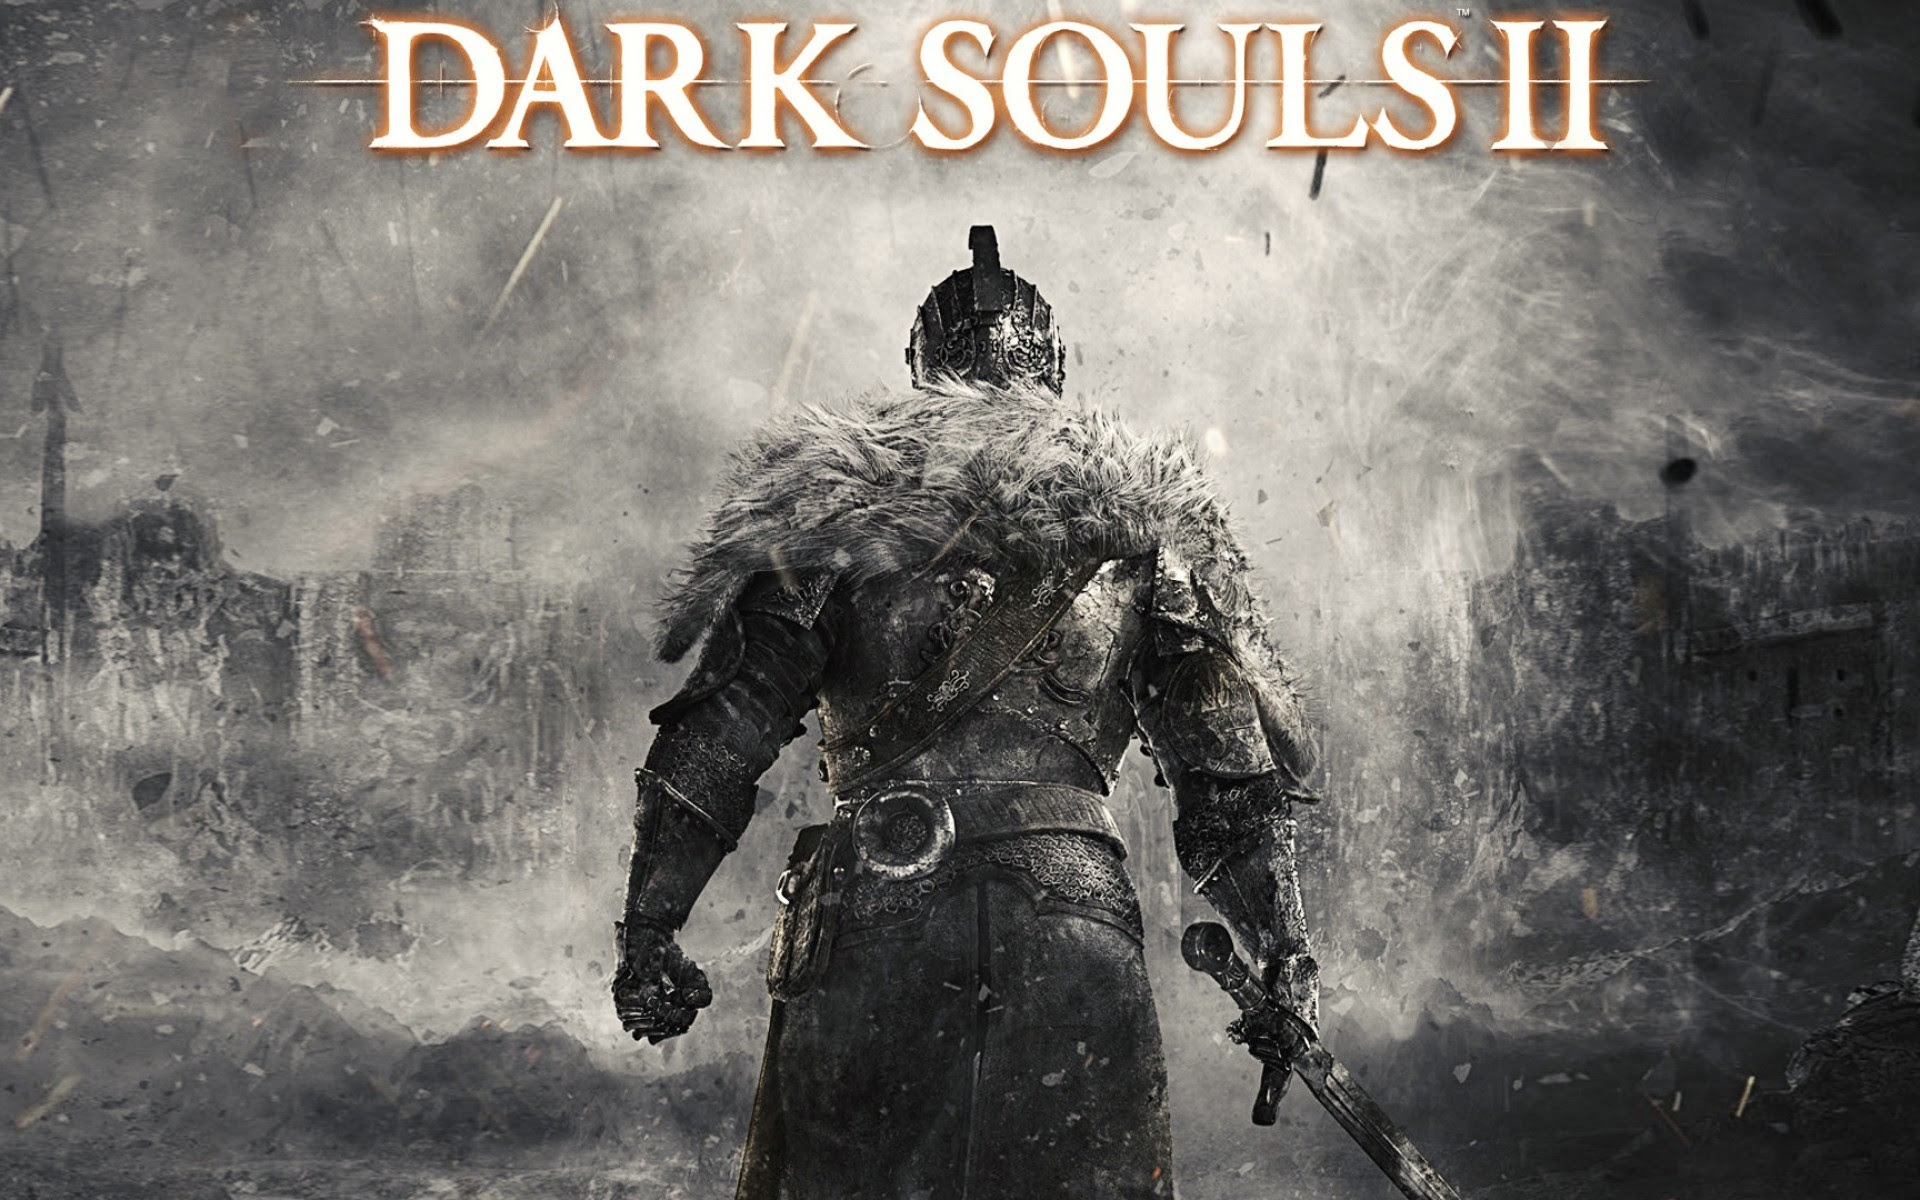 Dark Souls 2 Wallpaper 1920x1080 78 Images